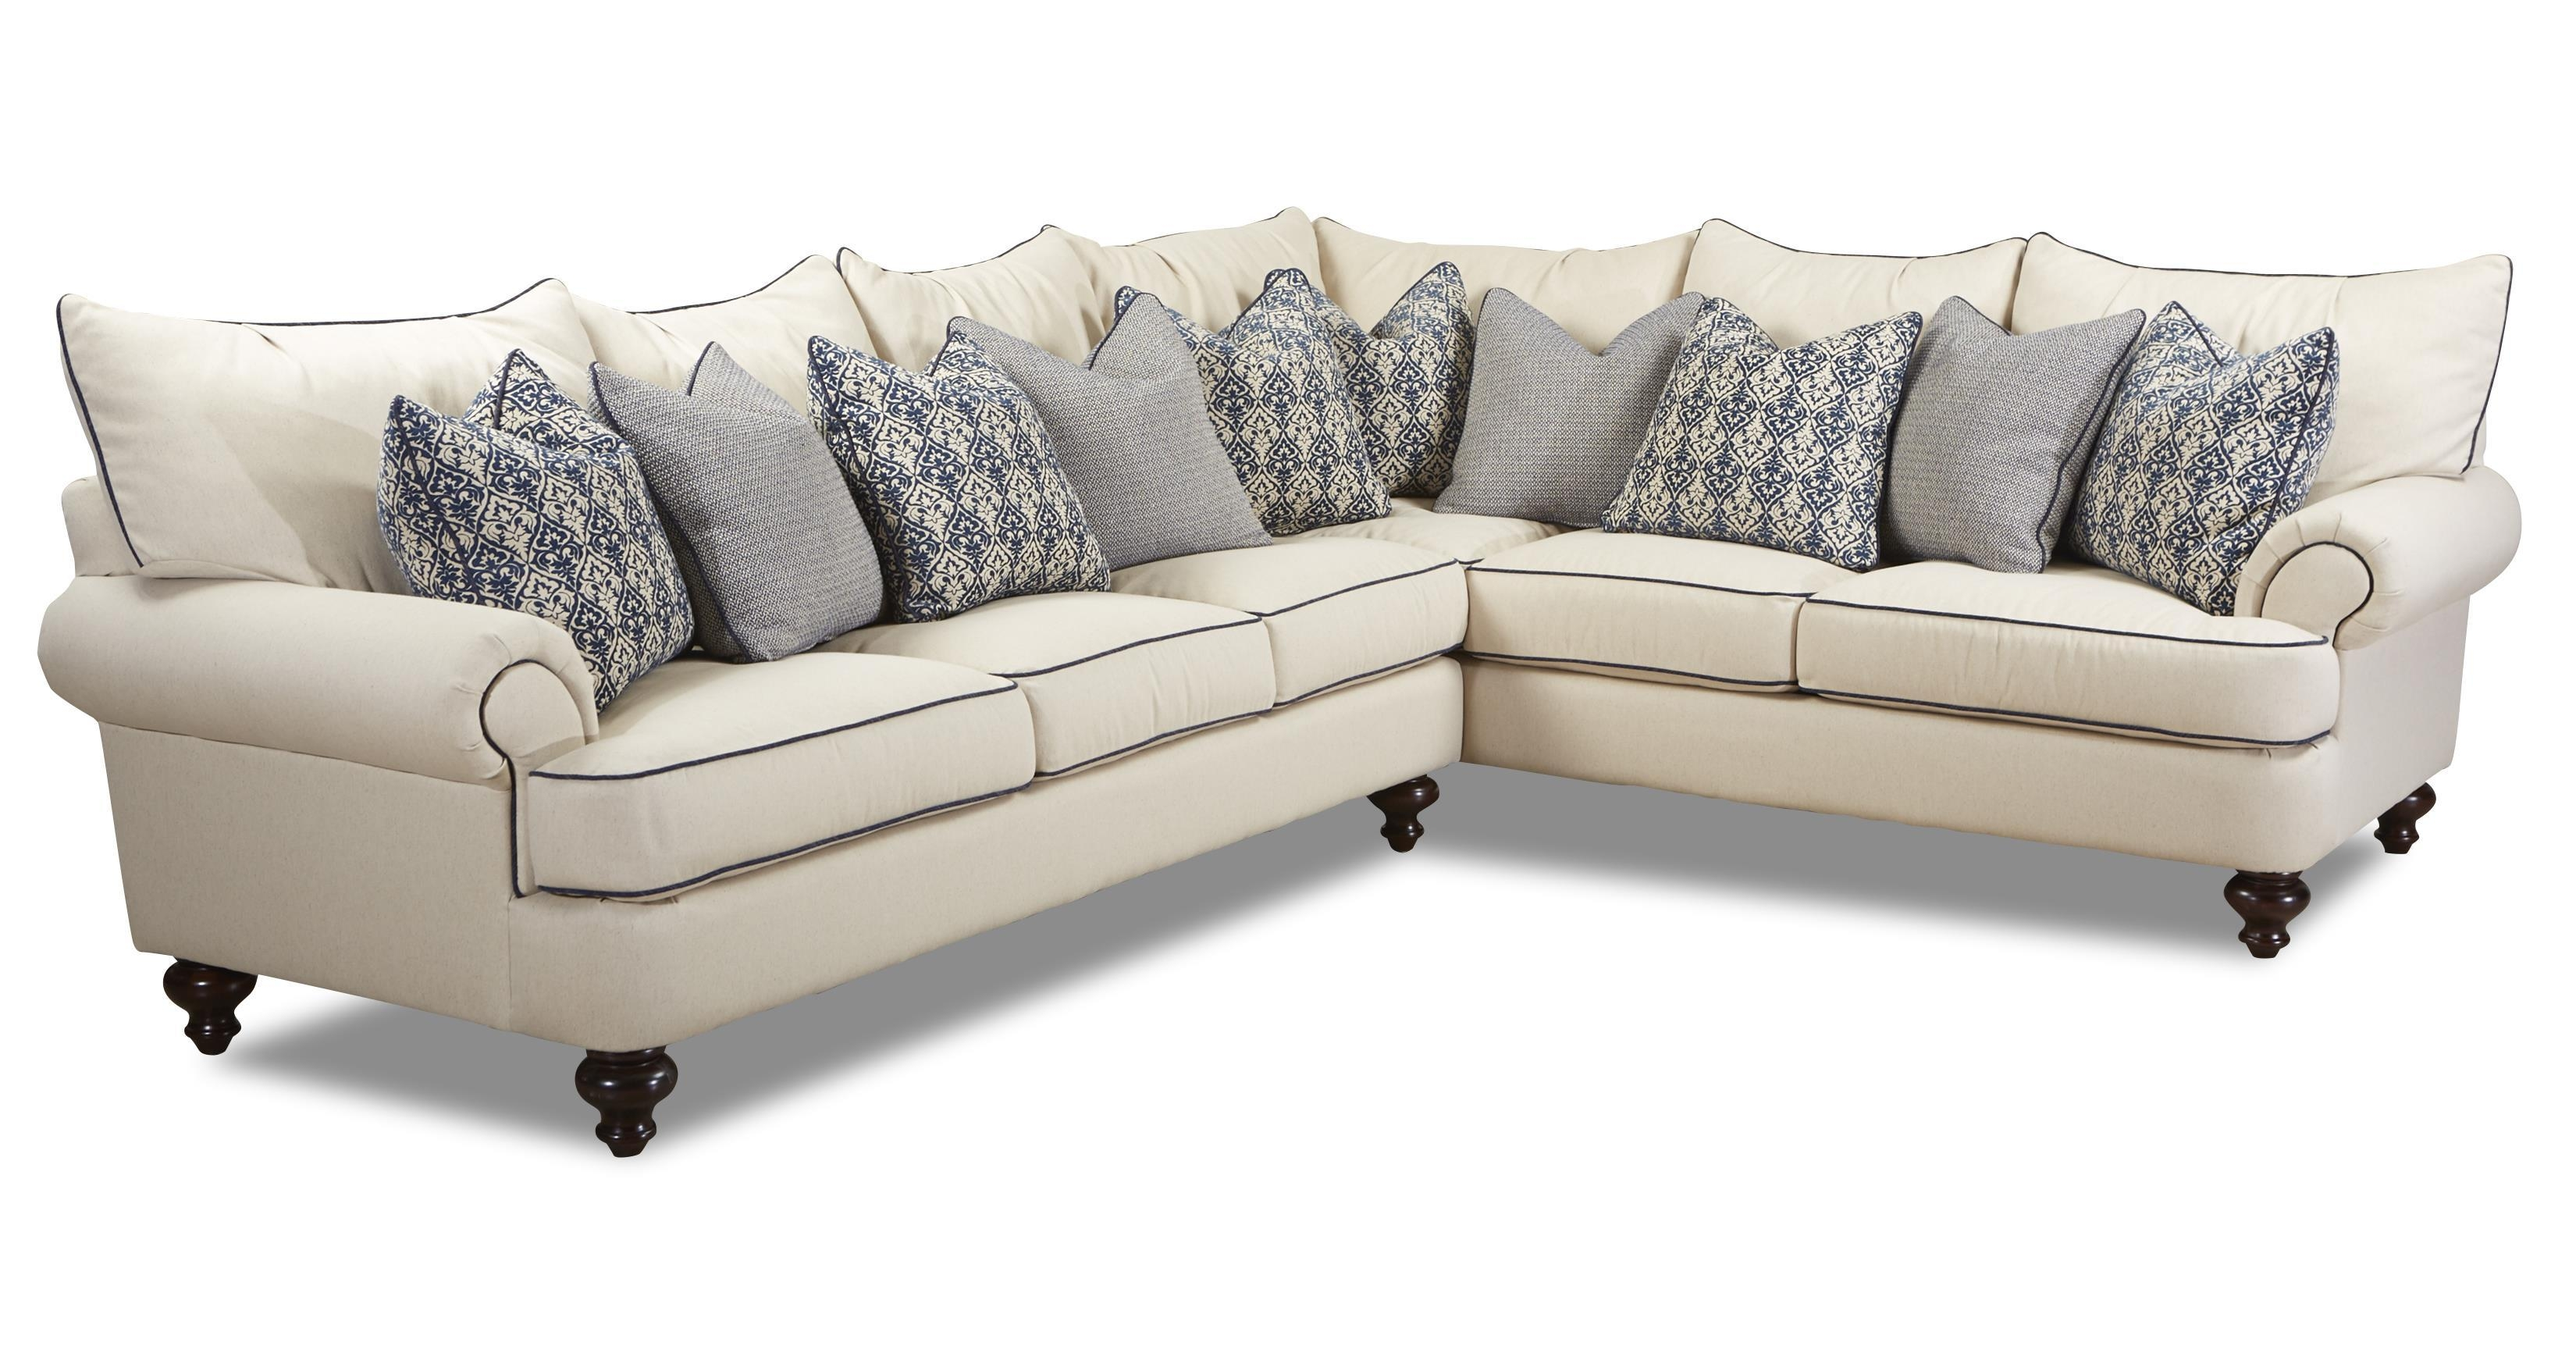 Shabby Chic Sectional Sofaklaussner | Wolf And Gardiner Wolf Within Shabby Chic Sectional Sofas (View 2 of 20)